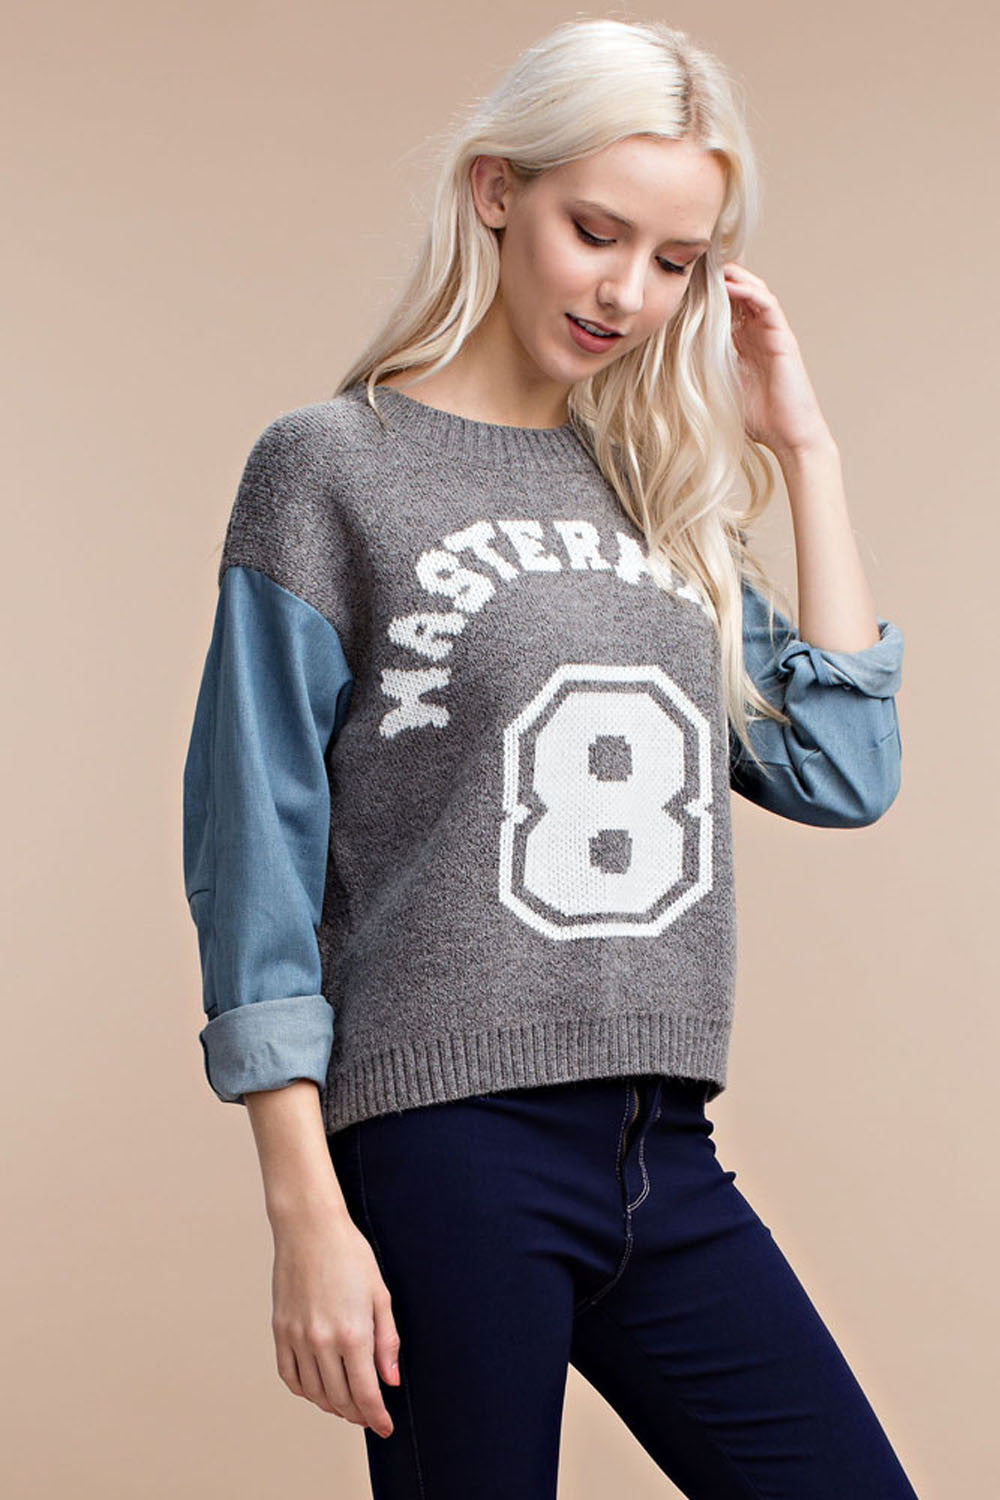 Mastermind Graphic Sweater - sweaters - GOZON